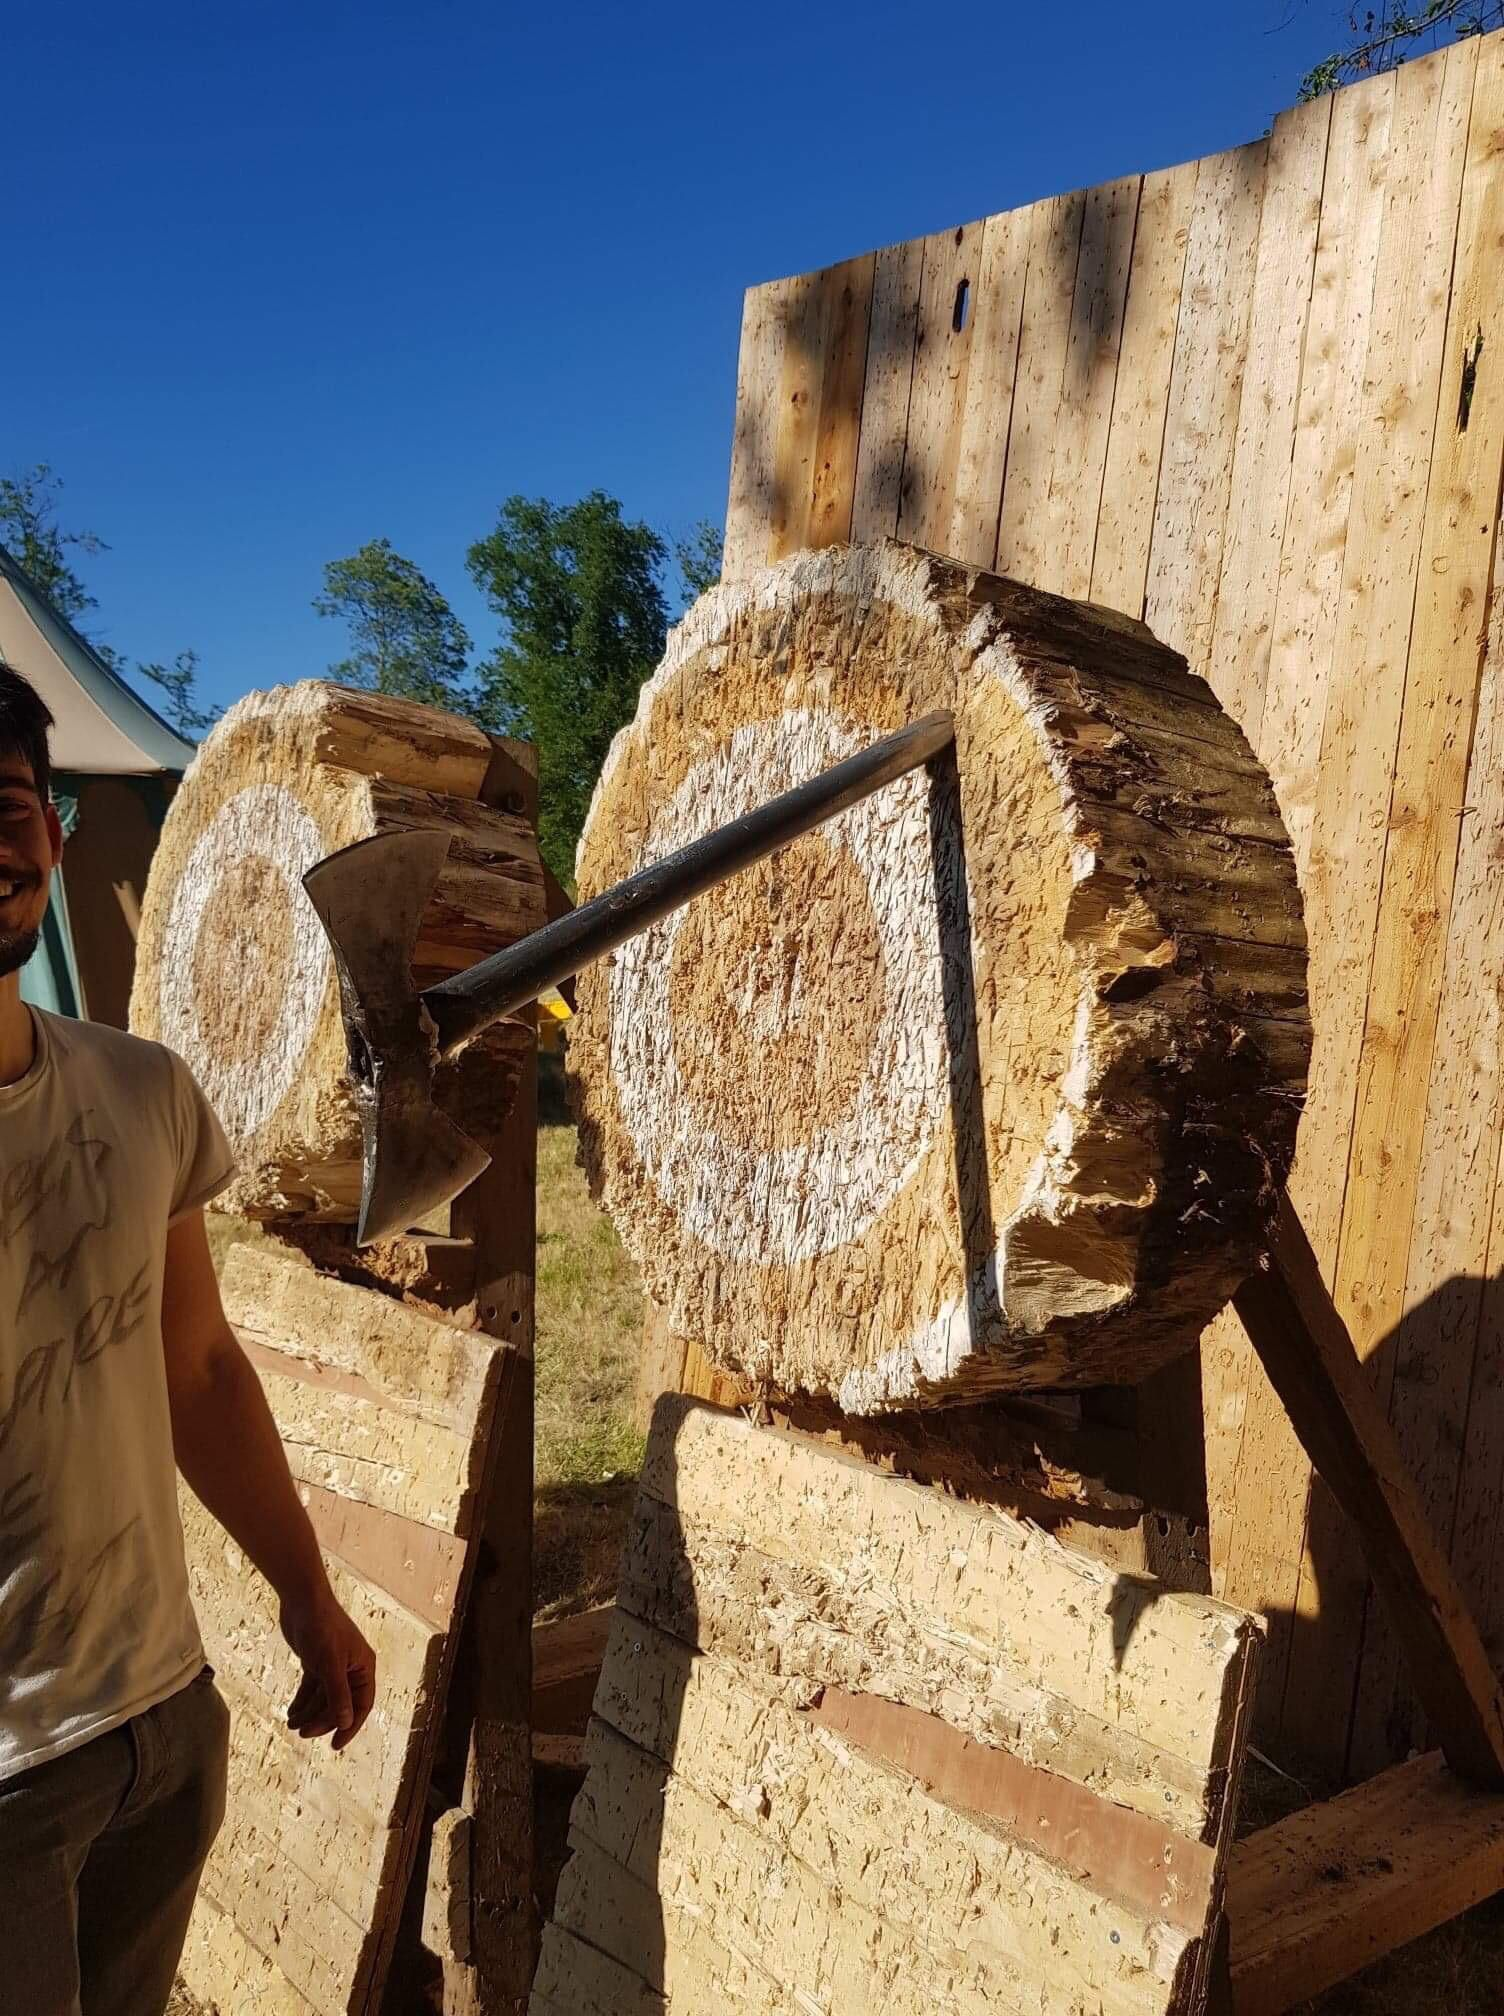 Today my friend tried axe-throwing. It ended quite unexpectedly